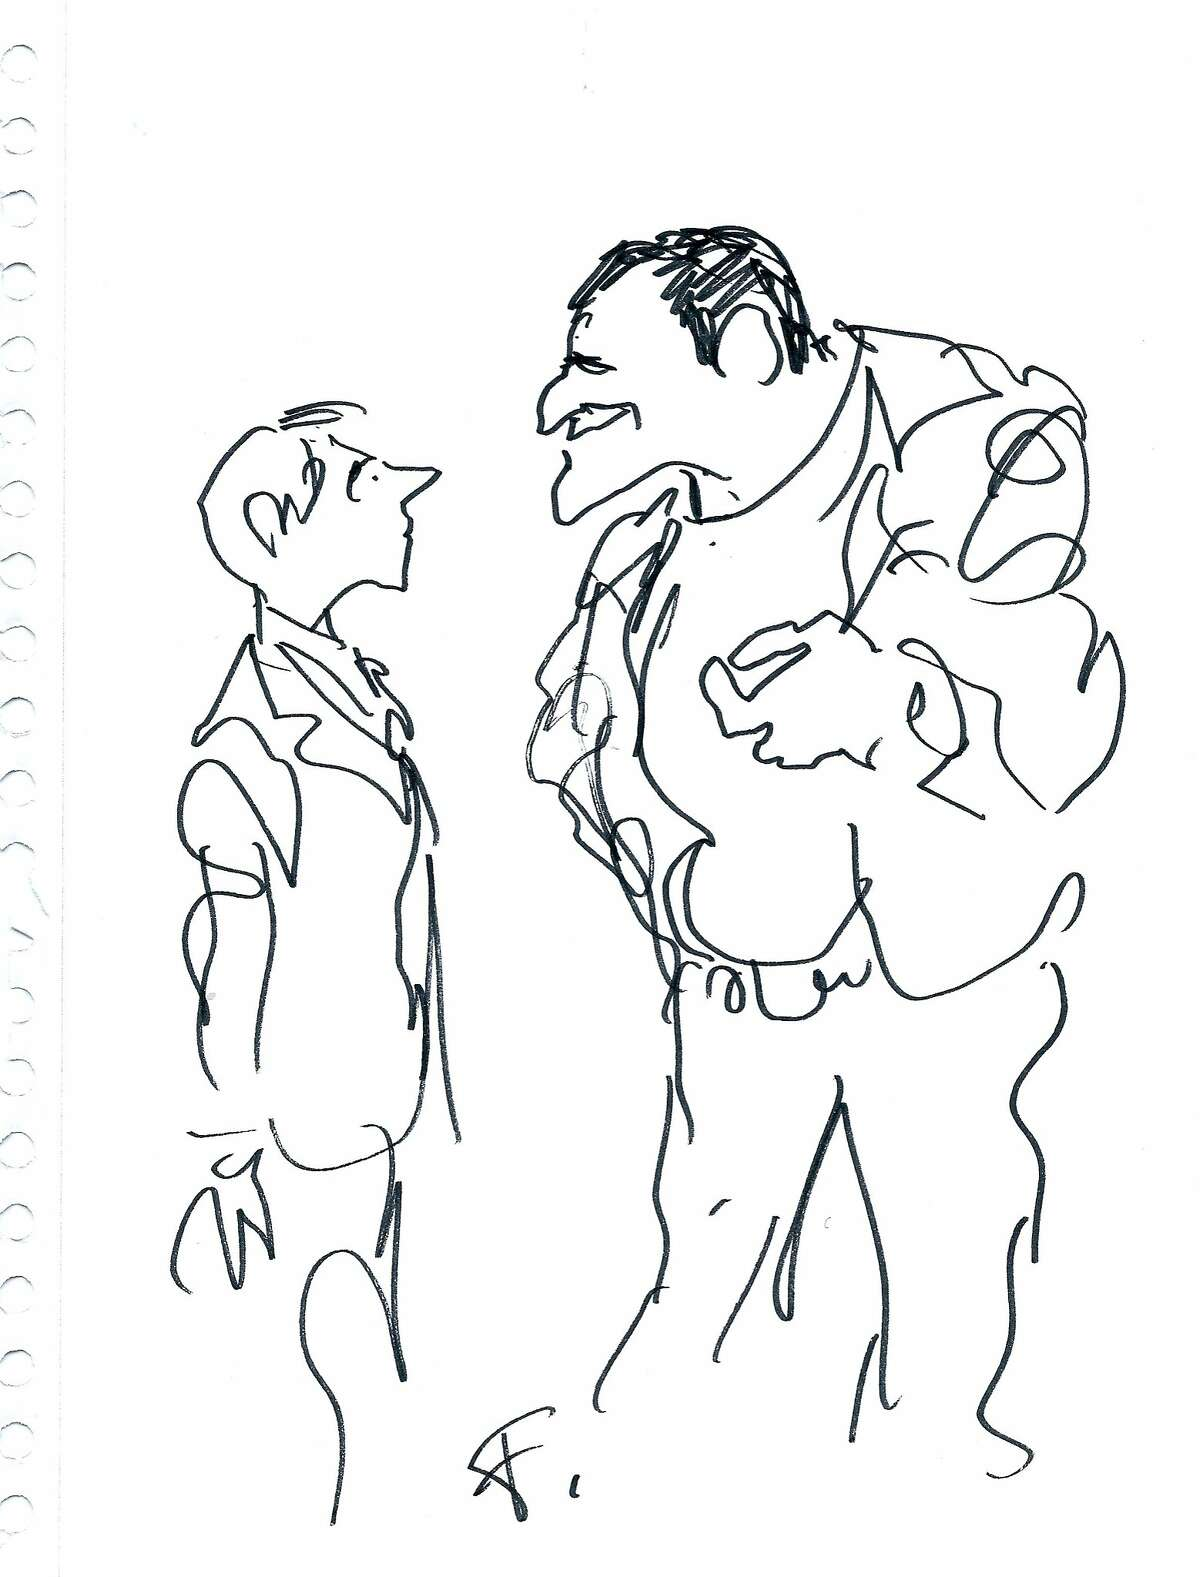 here are cartoons. BY Jules Feiffer Young Bernard and Huey, Old Bernard and Huey. Credit Jules Feiffer [he drew these for the director, Dan Mirvish]